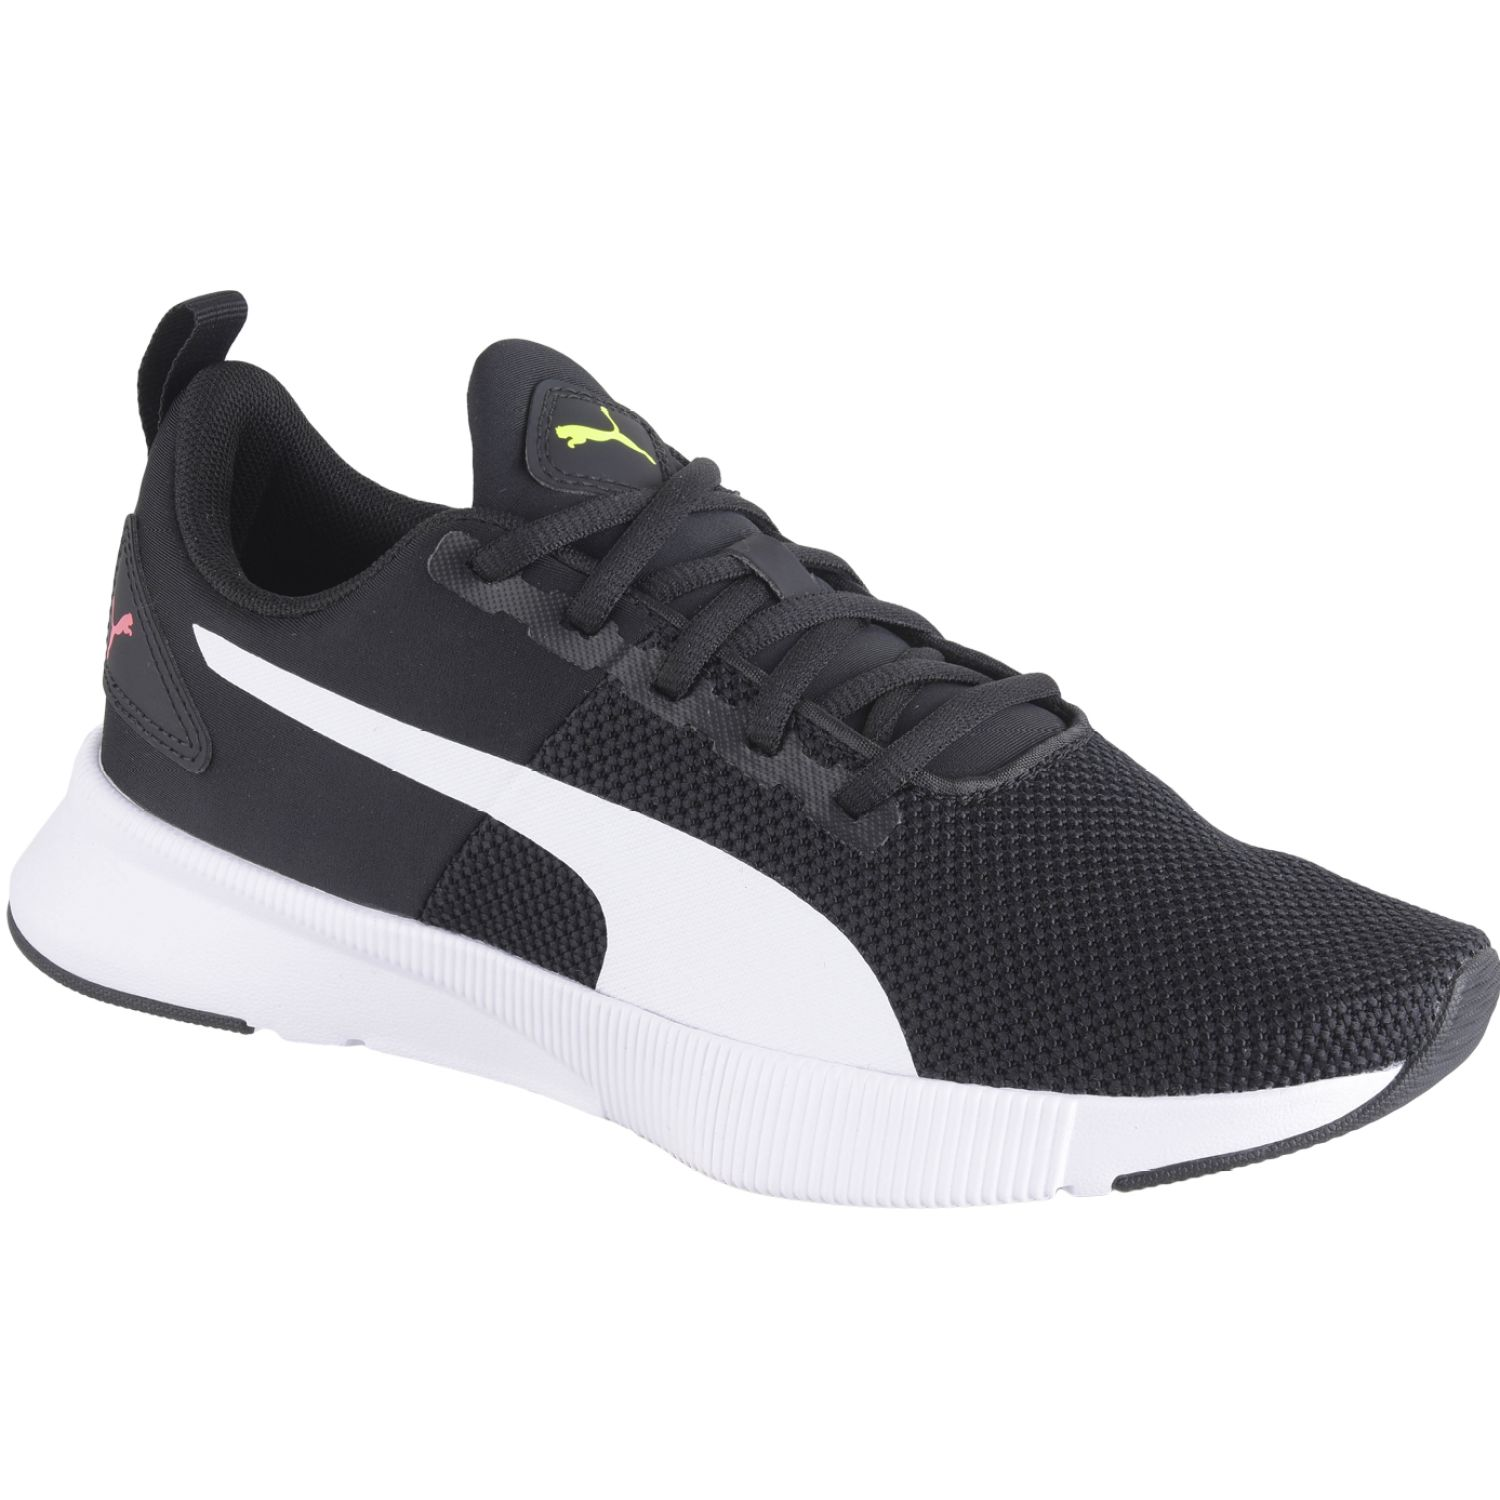 Puma FLYER RUNNER Negro / blanco Chicas